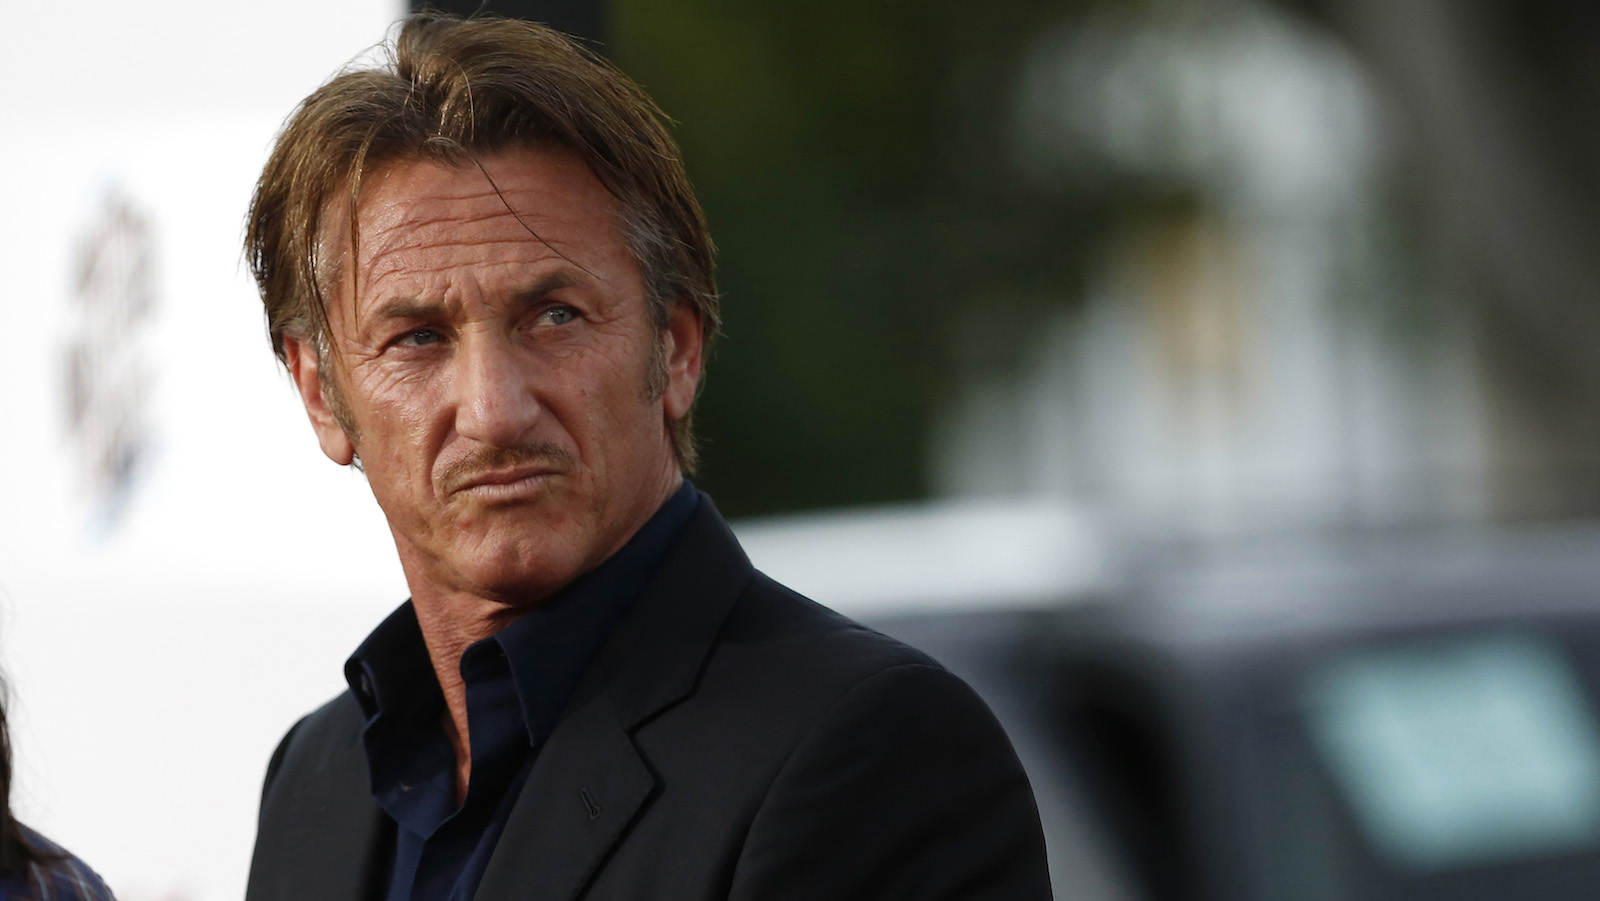 """Actor Sean Penn attends the premiere of """"A Million Ways to Die in the West"""" in Los Angeles, California May 15, 2014. The movie opens in the U.S. on May 30.   REUTERS/Mario Anzuoni  (UNITED STATES - Tags: ENTERTAINMENT) -"""